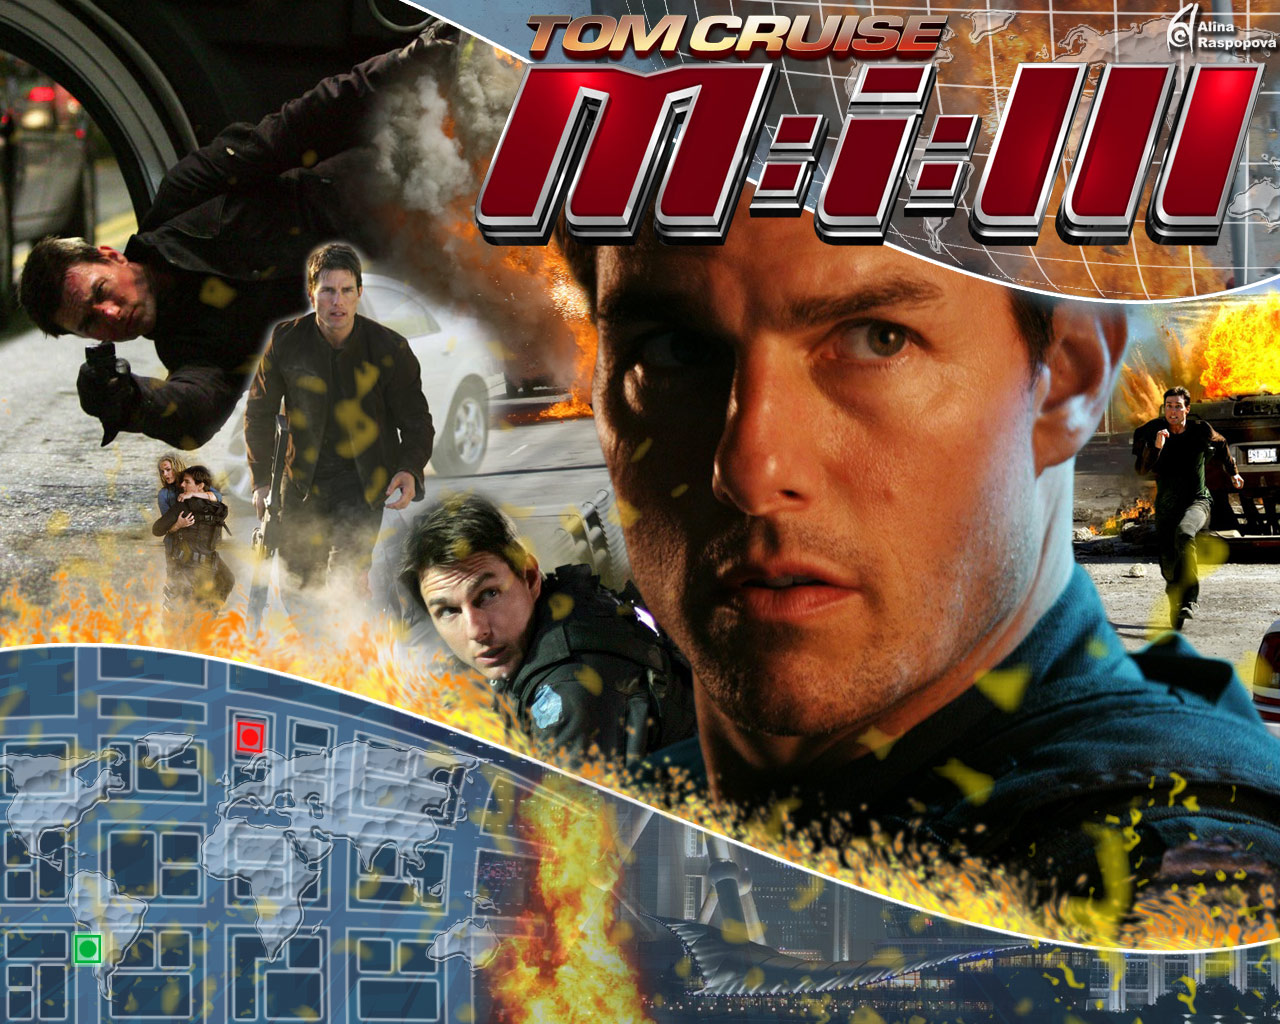 My Movie Review imdb copyright: Mission : Impossible III (2006)